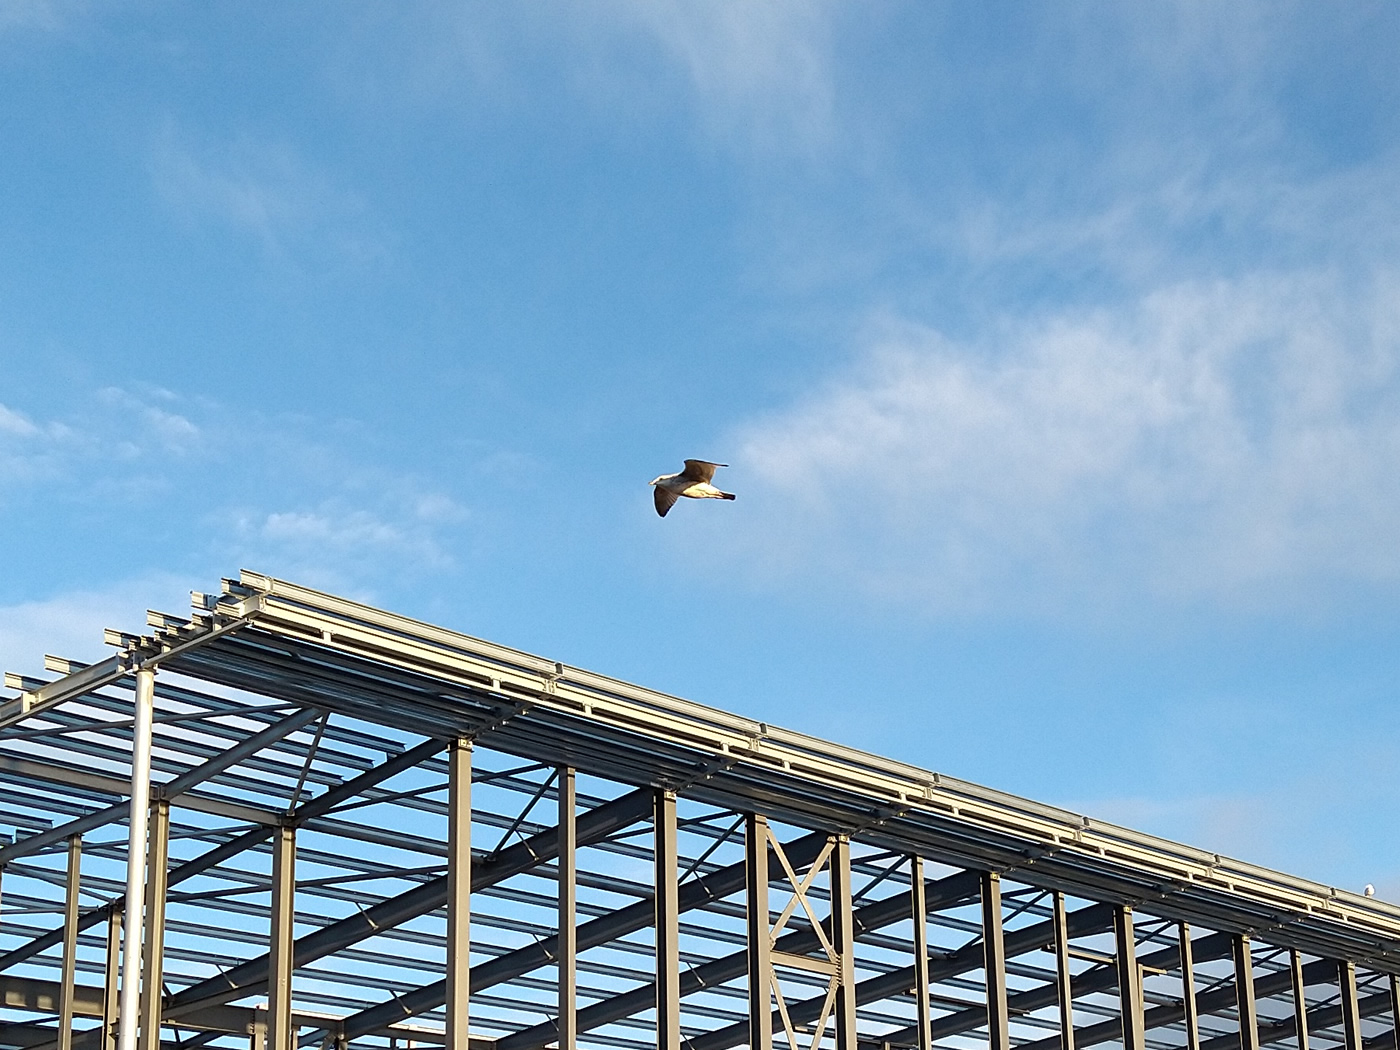 A seagull gliding above the structure of Helensburgh's new leisure centre